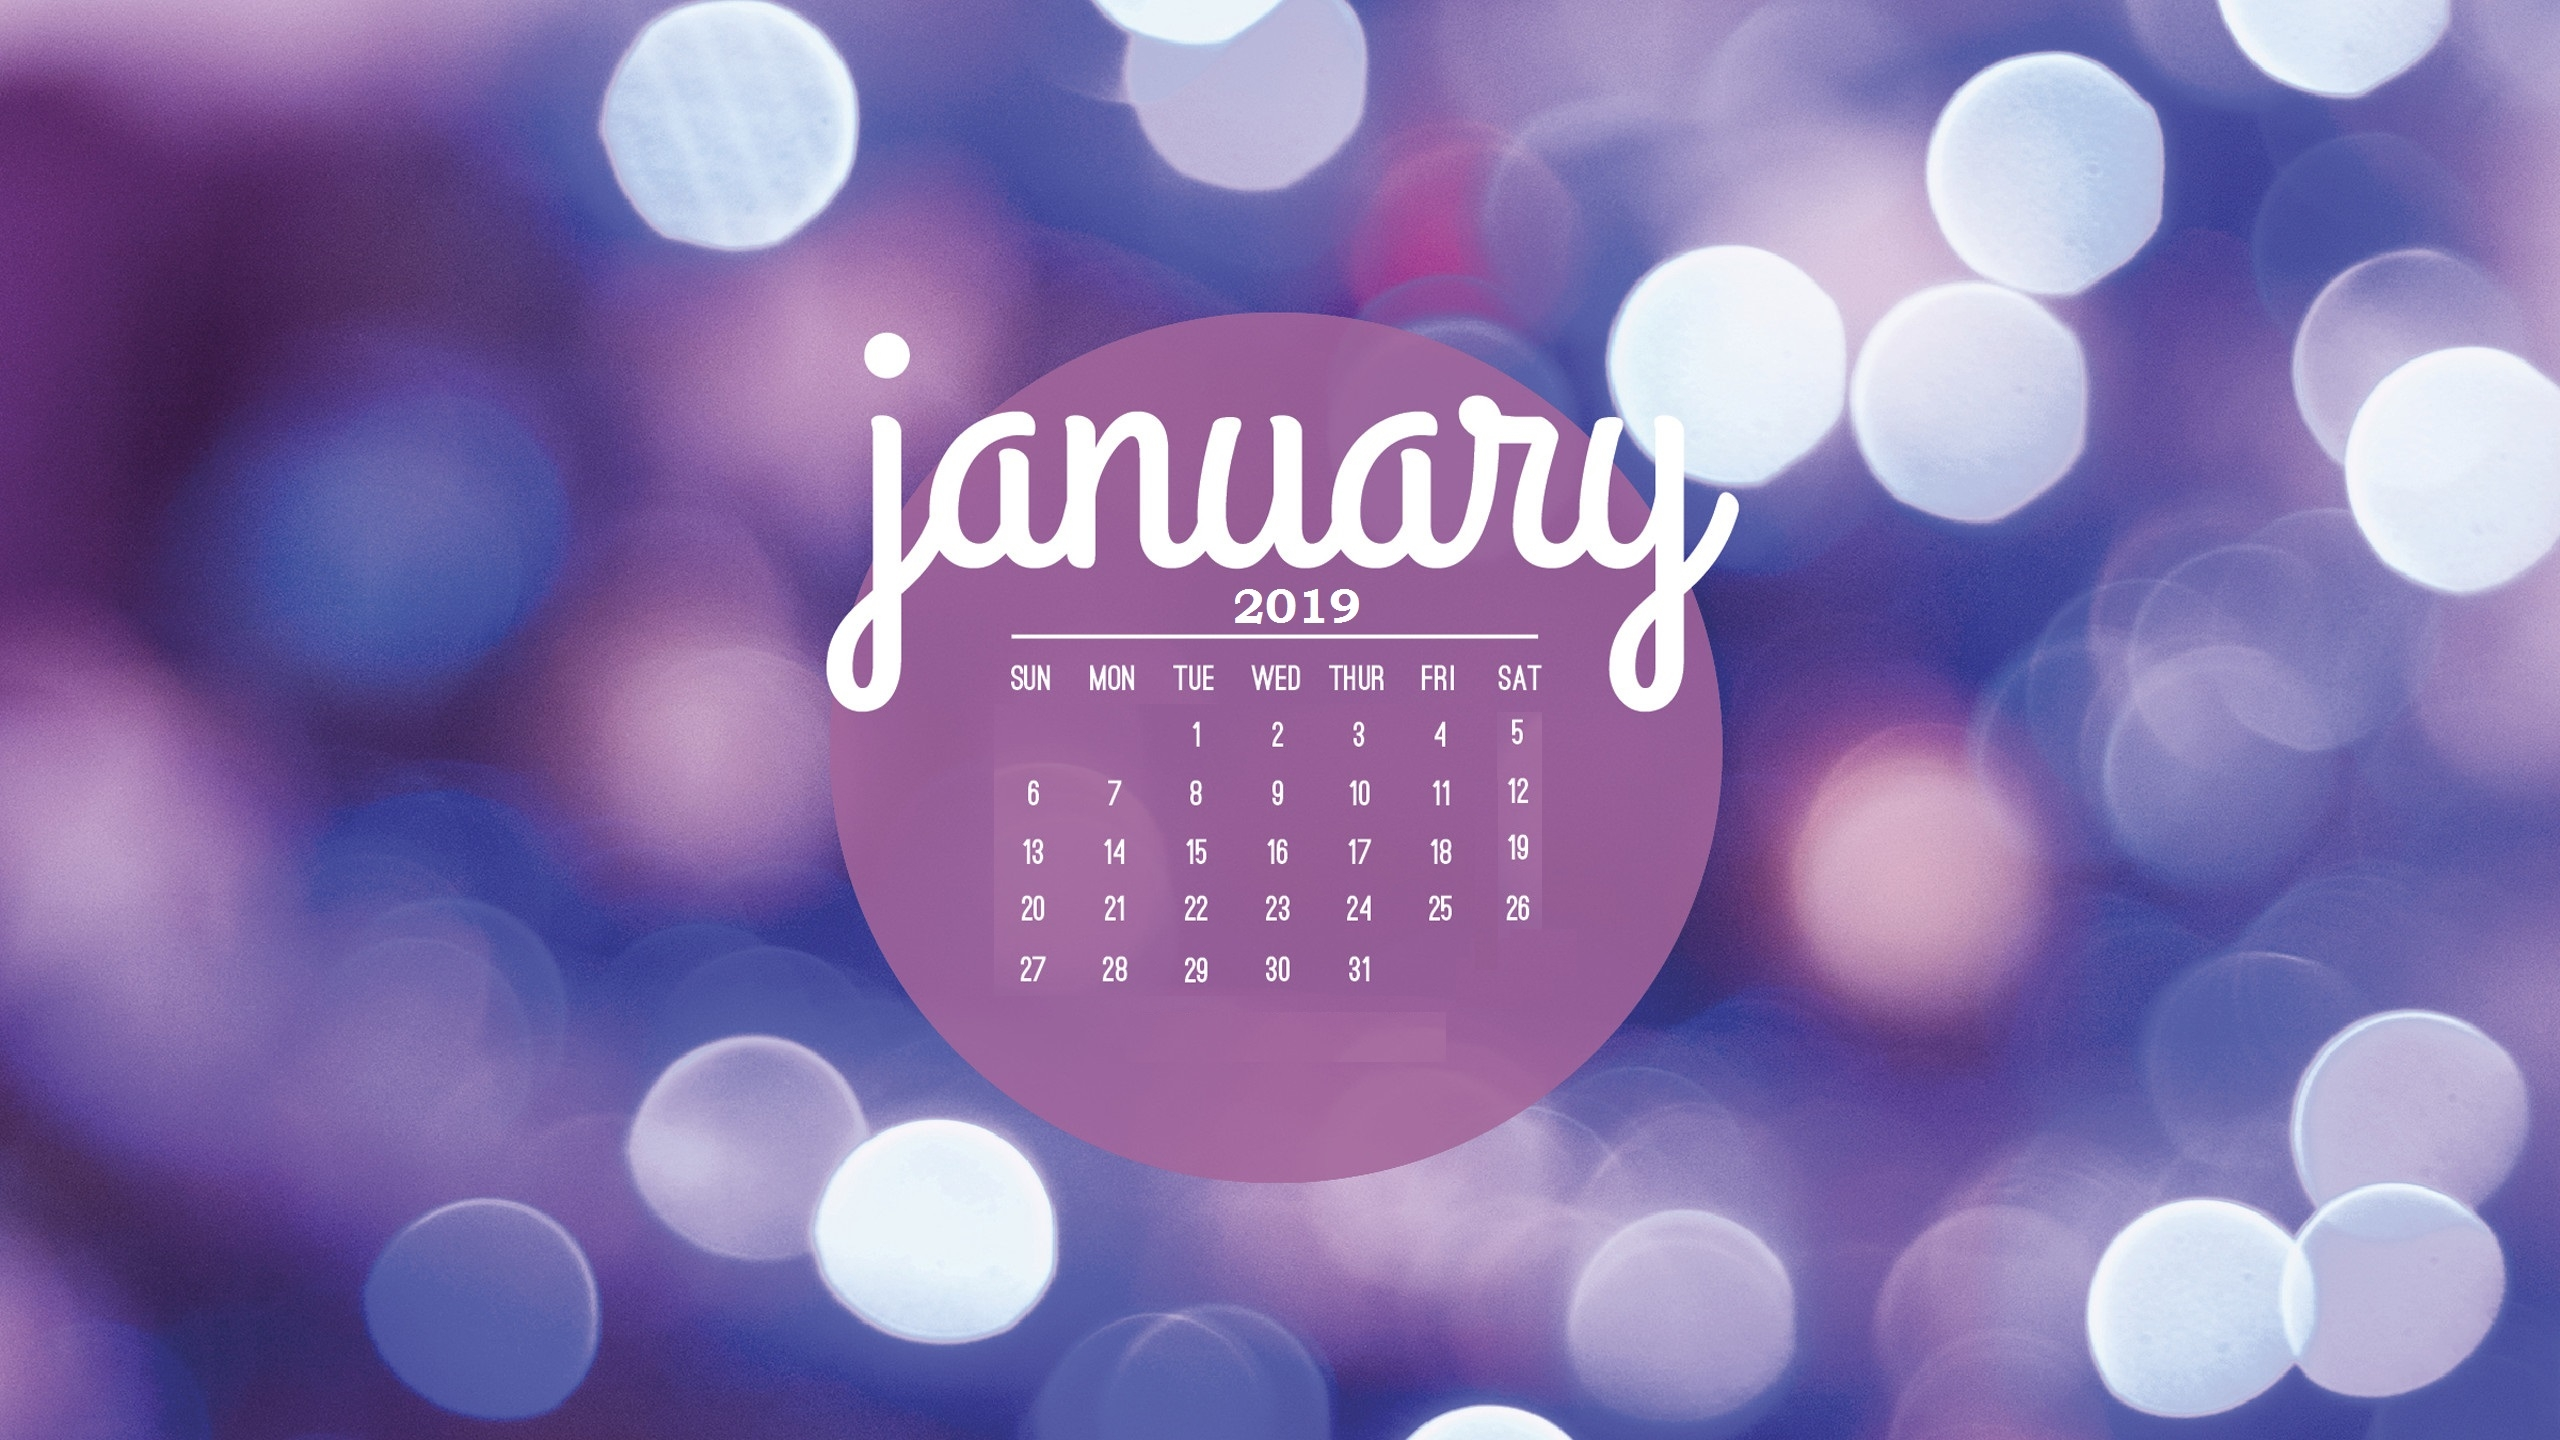 january 2019 hd calendar wallpapers calendar 2019::January 2019 Desktop Calendar Wallpaper